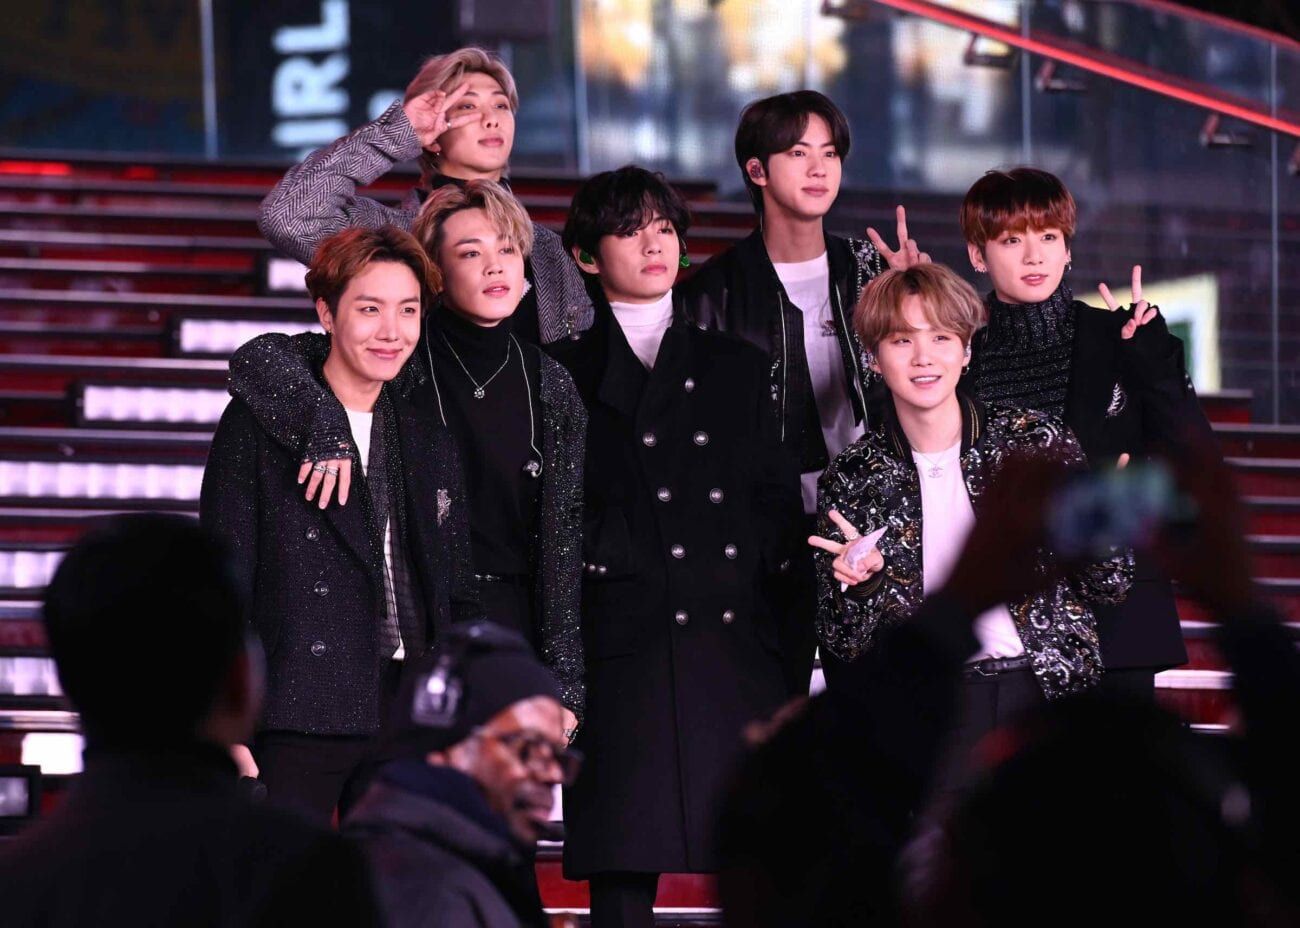 """Everyone loves BTS, but what exactly does """"BTS"""" mean? Here's the meaning behind BTS and how the name has evolved since BTS grew in popularity."""